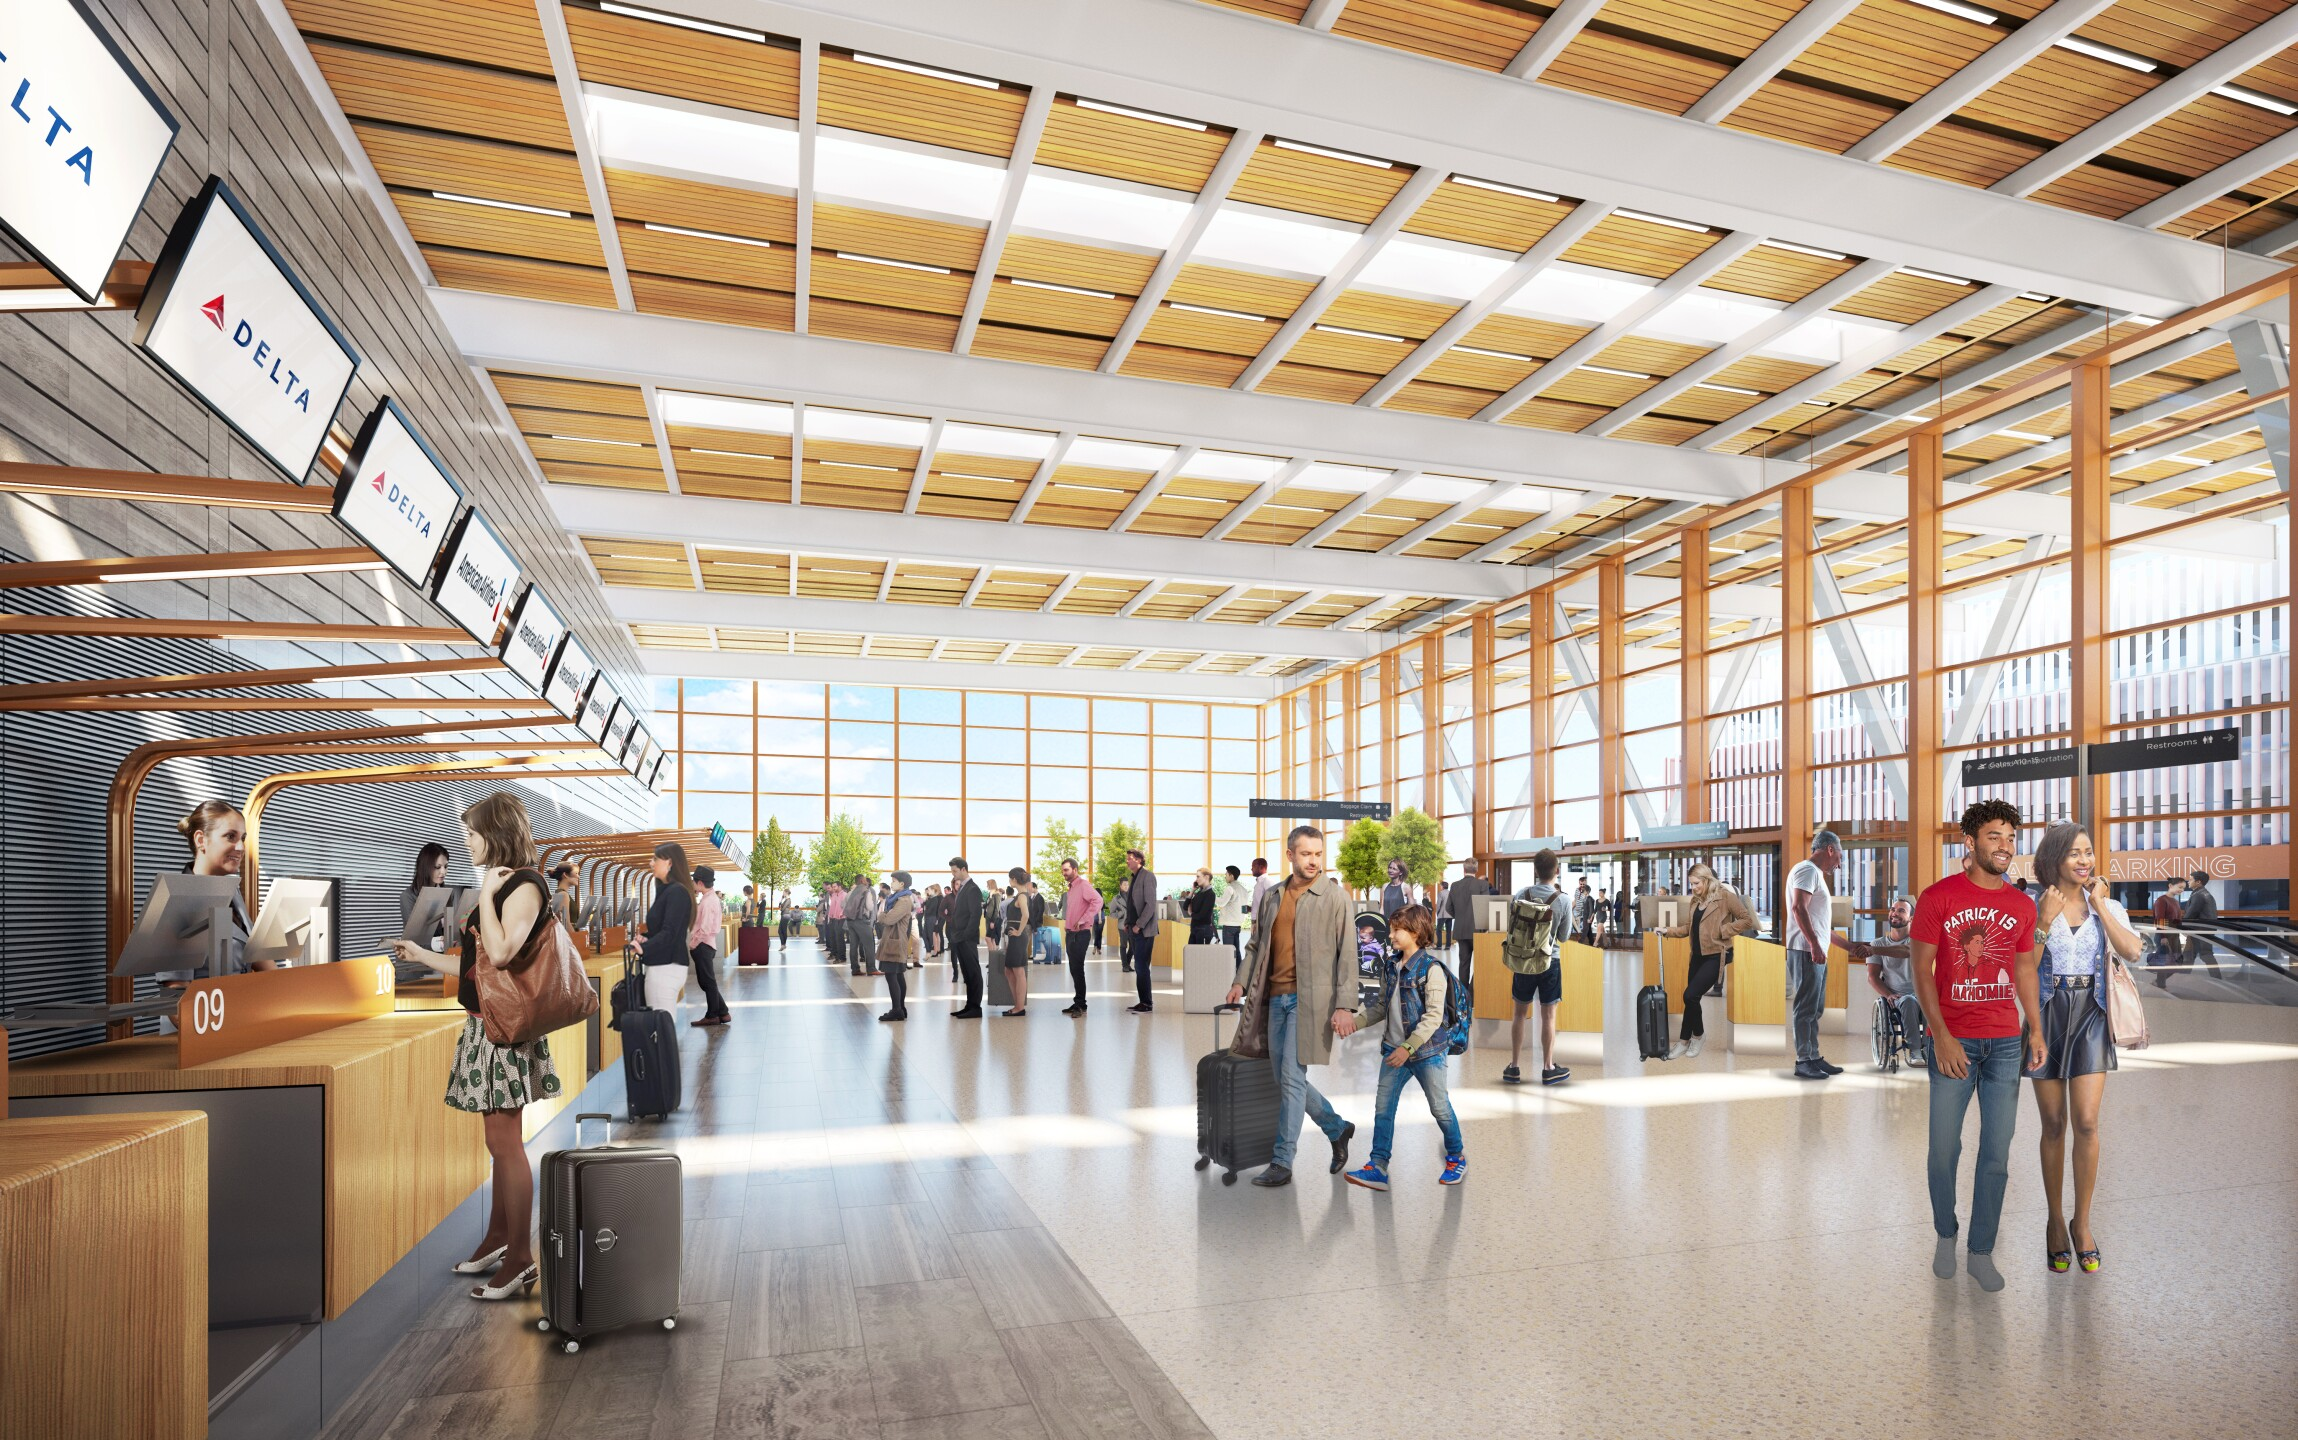 KCI_Check In Hall.jpg